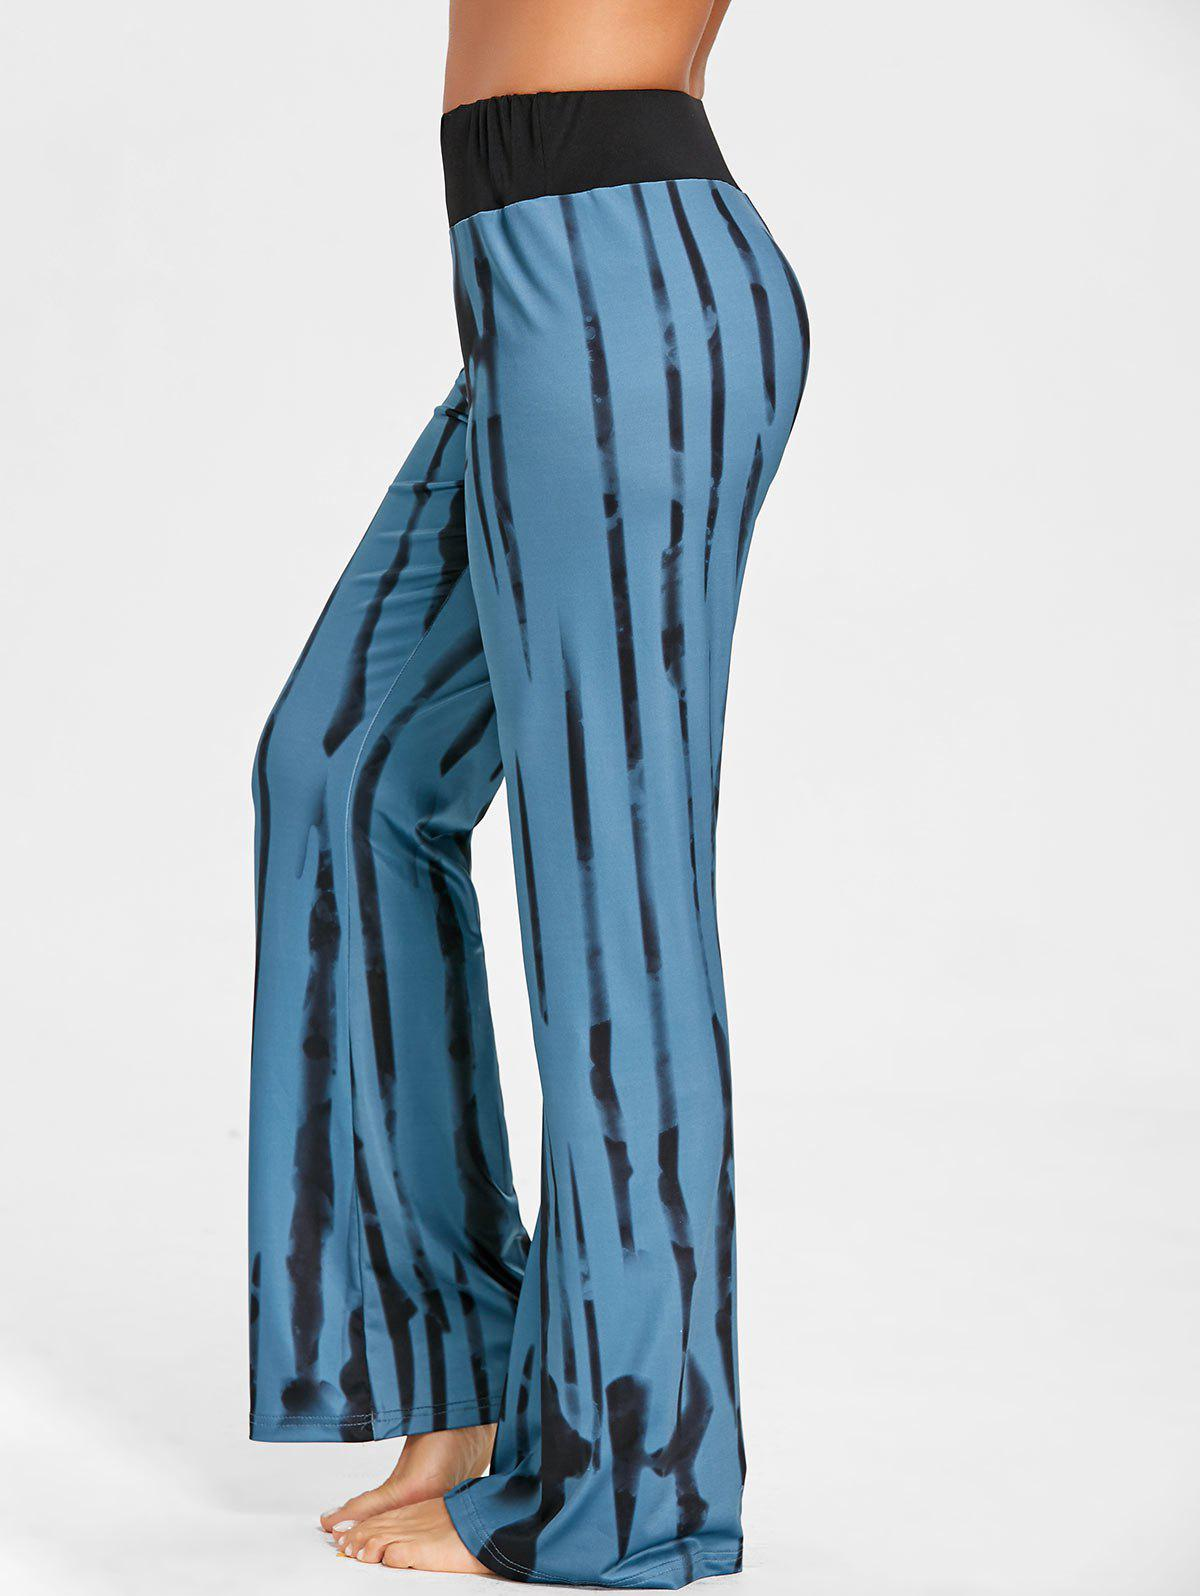 Vertical Stripe Ink Printed Wide Leg Pants - COLORMIX L